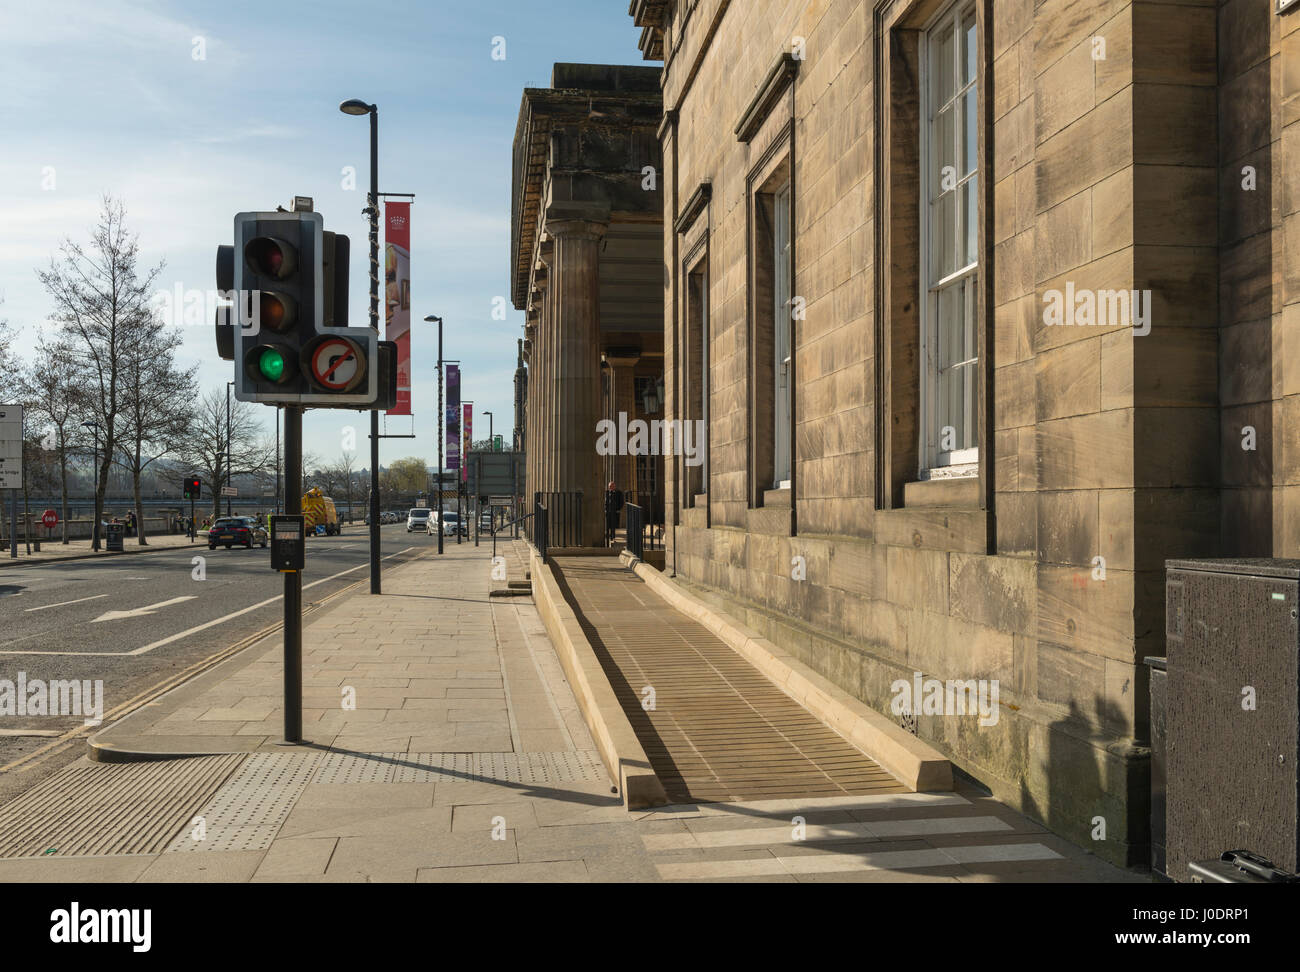 New disability access ramp at Perth Sheriff Court, Perth city centre,Tayside,Scotland,United Kingdom Stock Photo